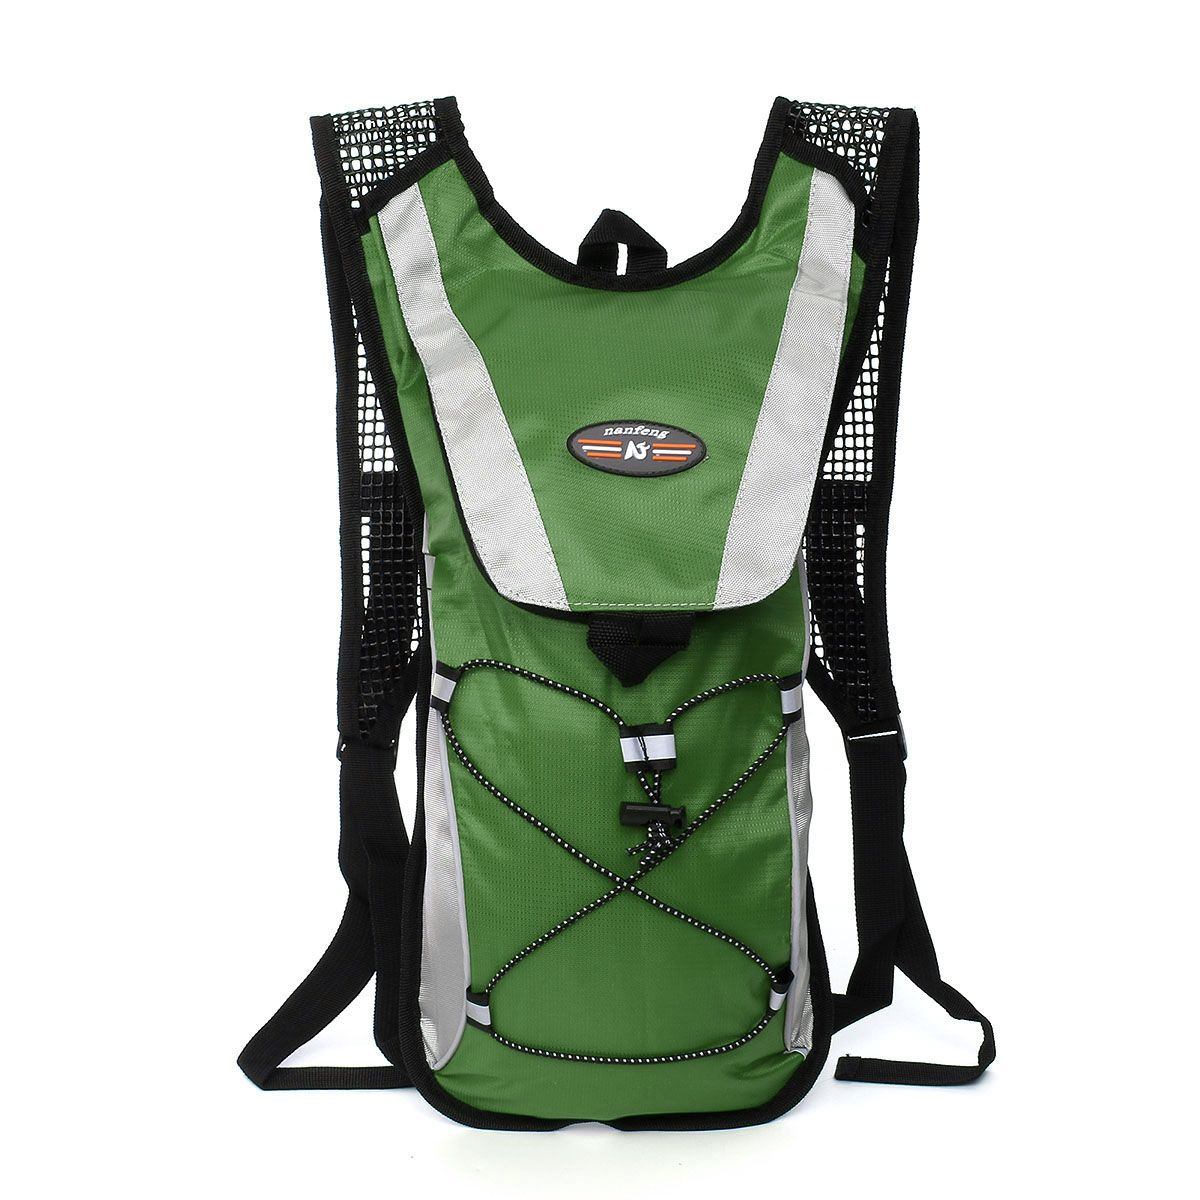 New  2L Hydration Pack Water Bladder Bag Reservoir Pouch Sport Camping Cycling